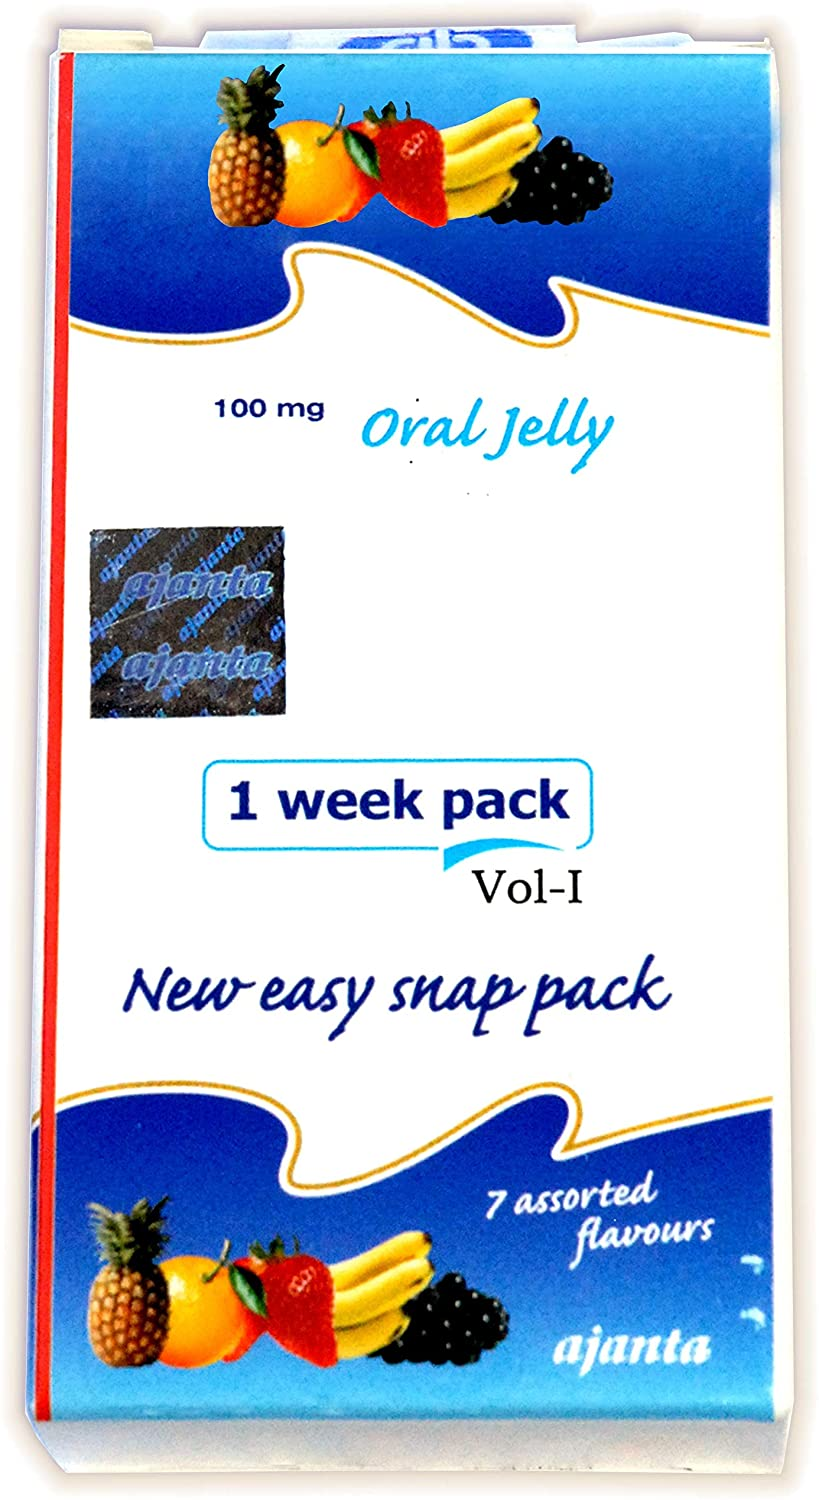 Men K Oral Jelly - 7 Assorted Fruit Flavors - 1 Week Pack